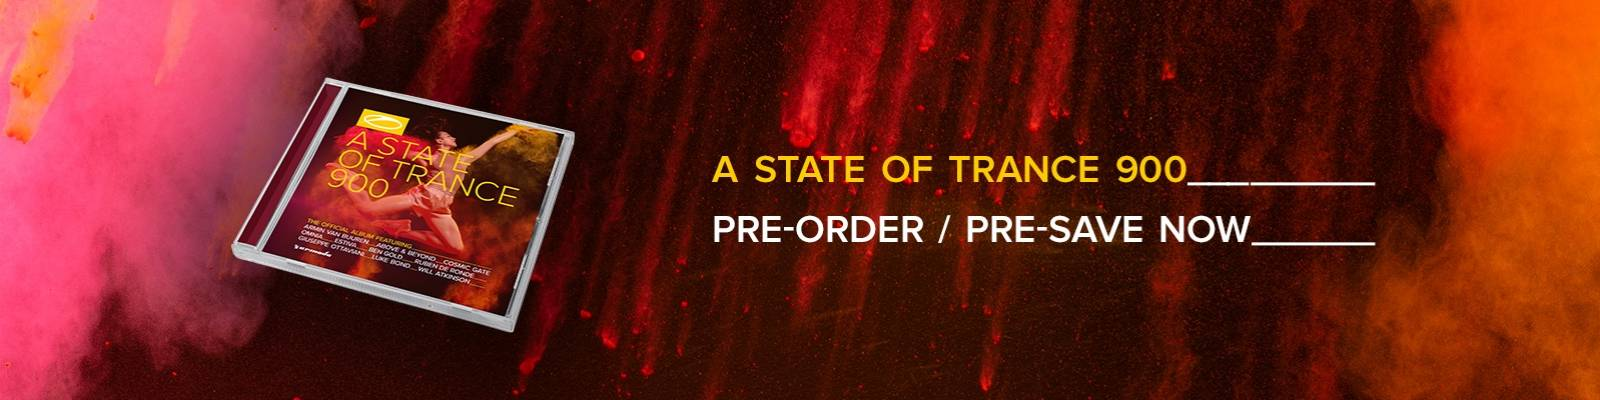 Available for pre-order/pre-save: A State Of Trance 900 (The Official Album)